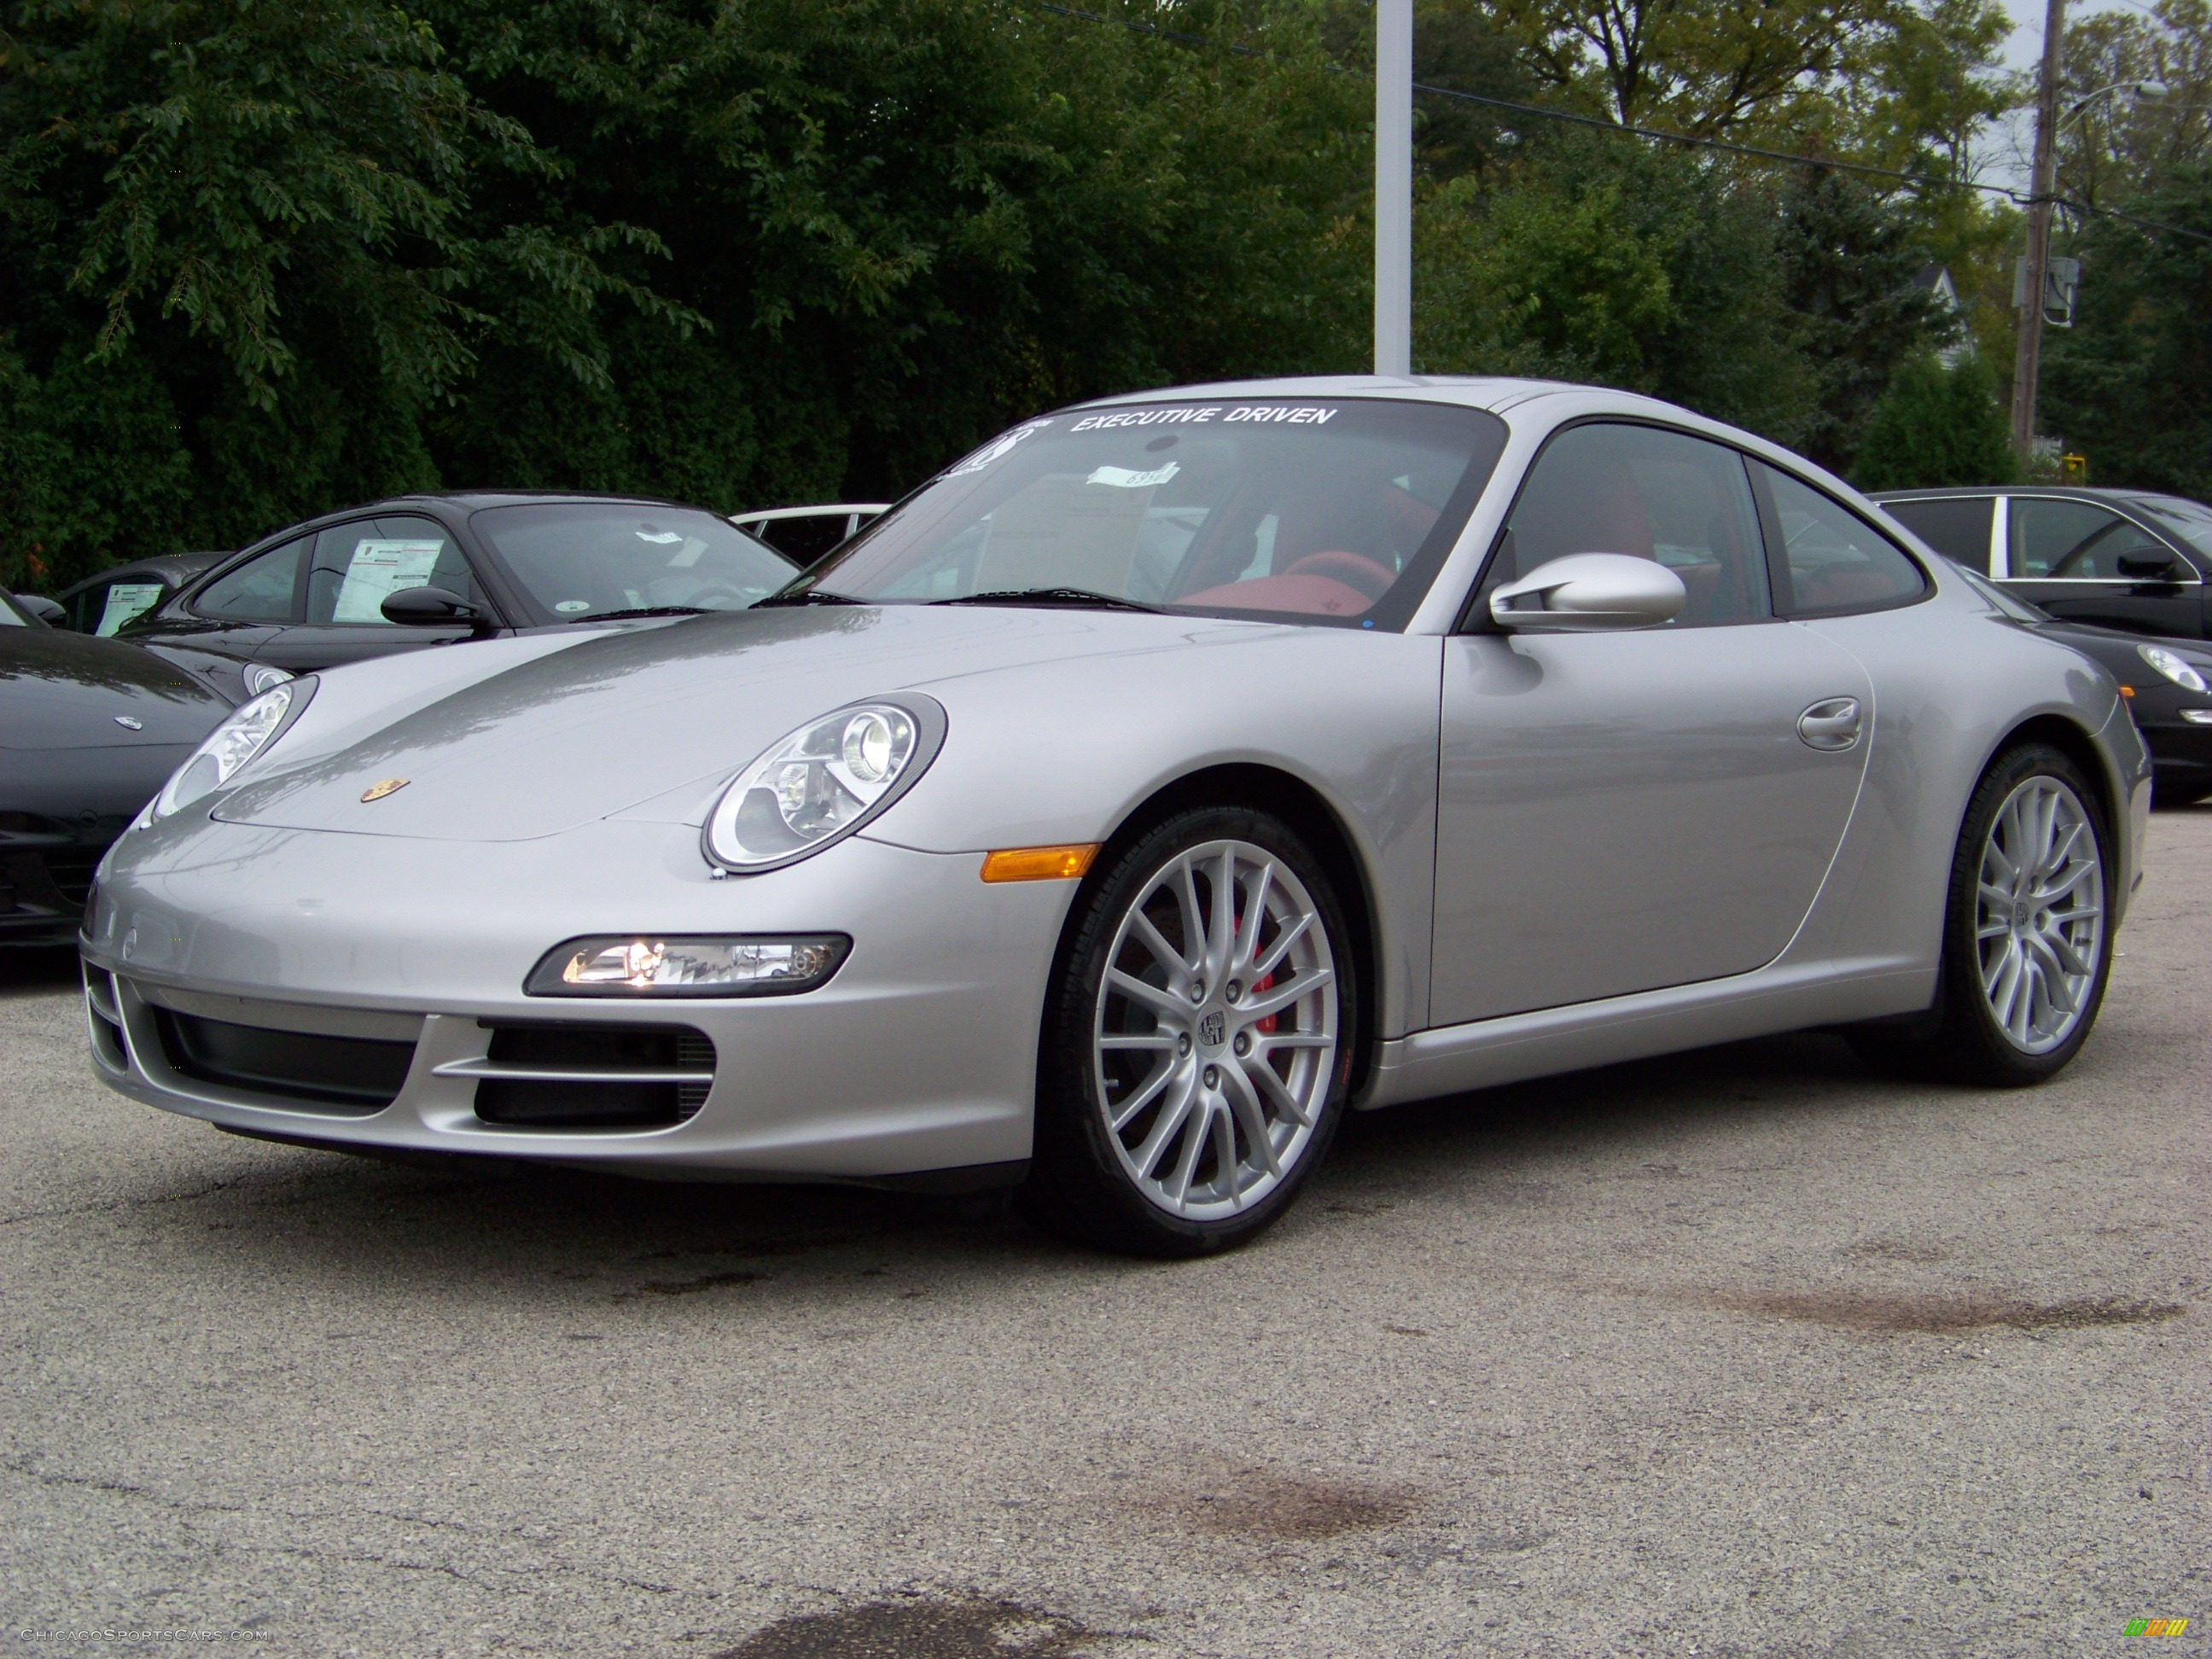 2008 Porsche 911 Carrera S Coupe In Arctic Silver Metallic